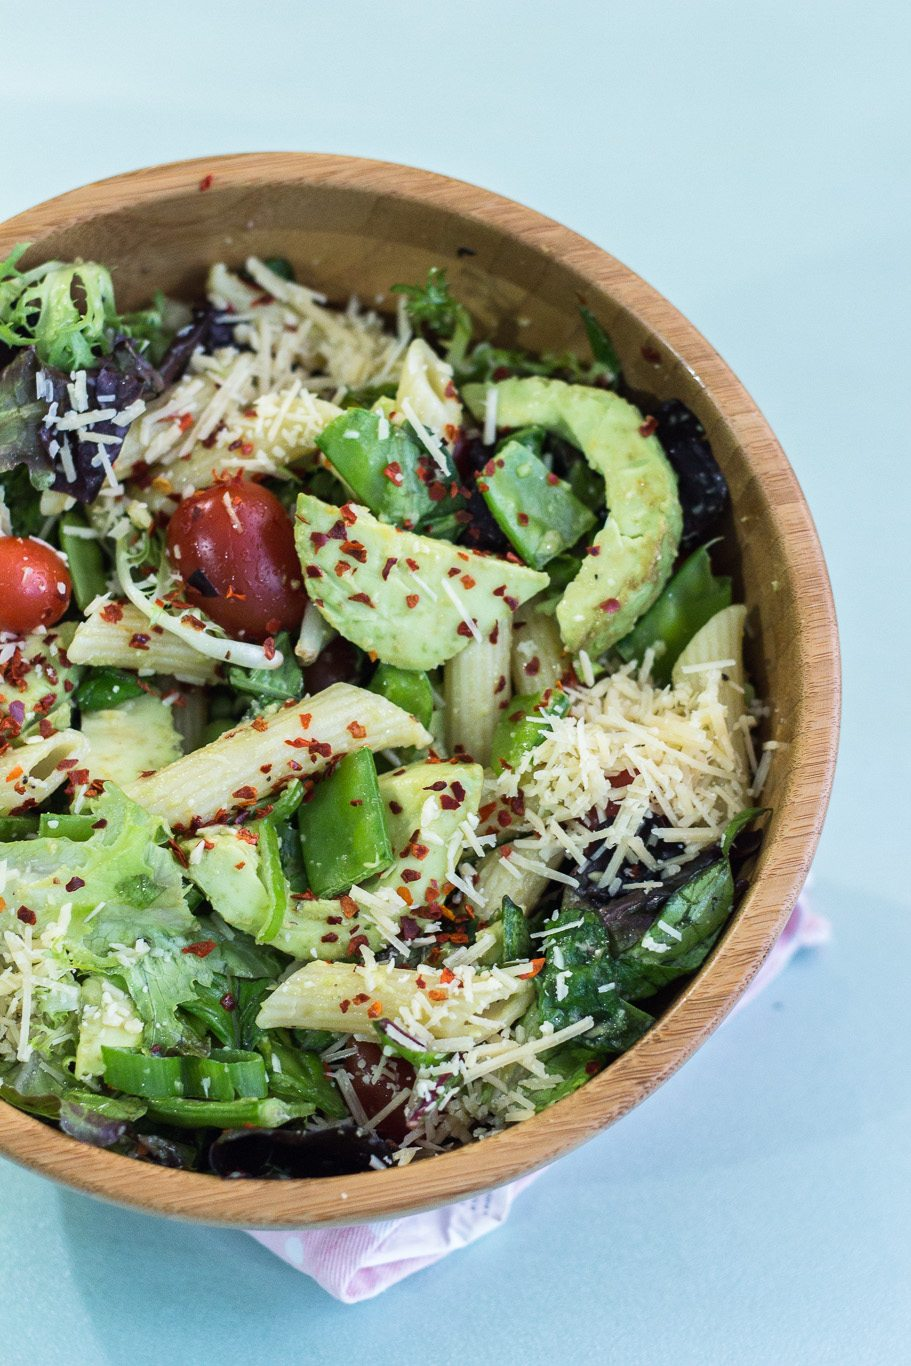 Delicious Pasta Salad with Avocado Dressing